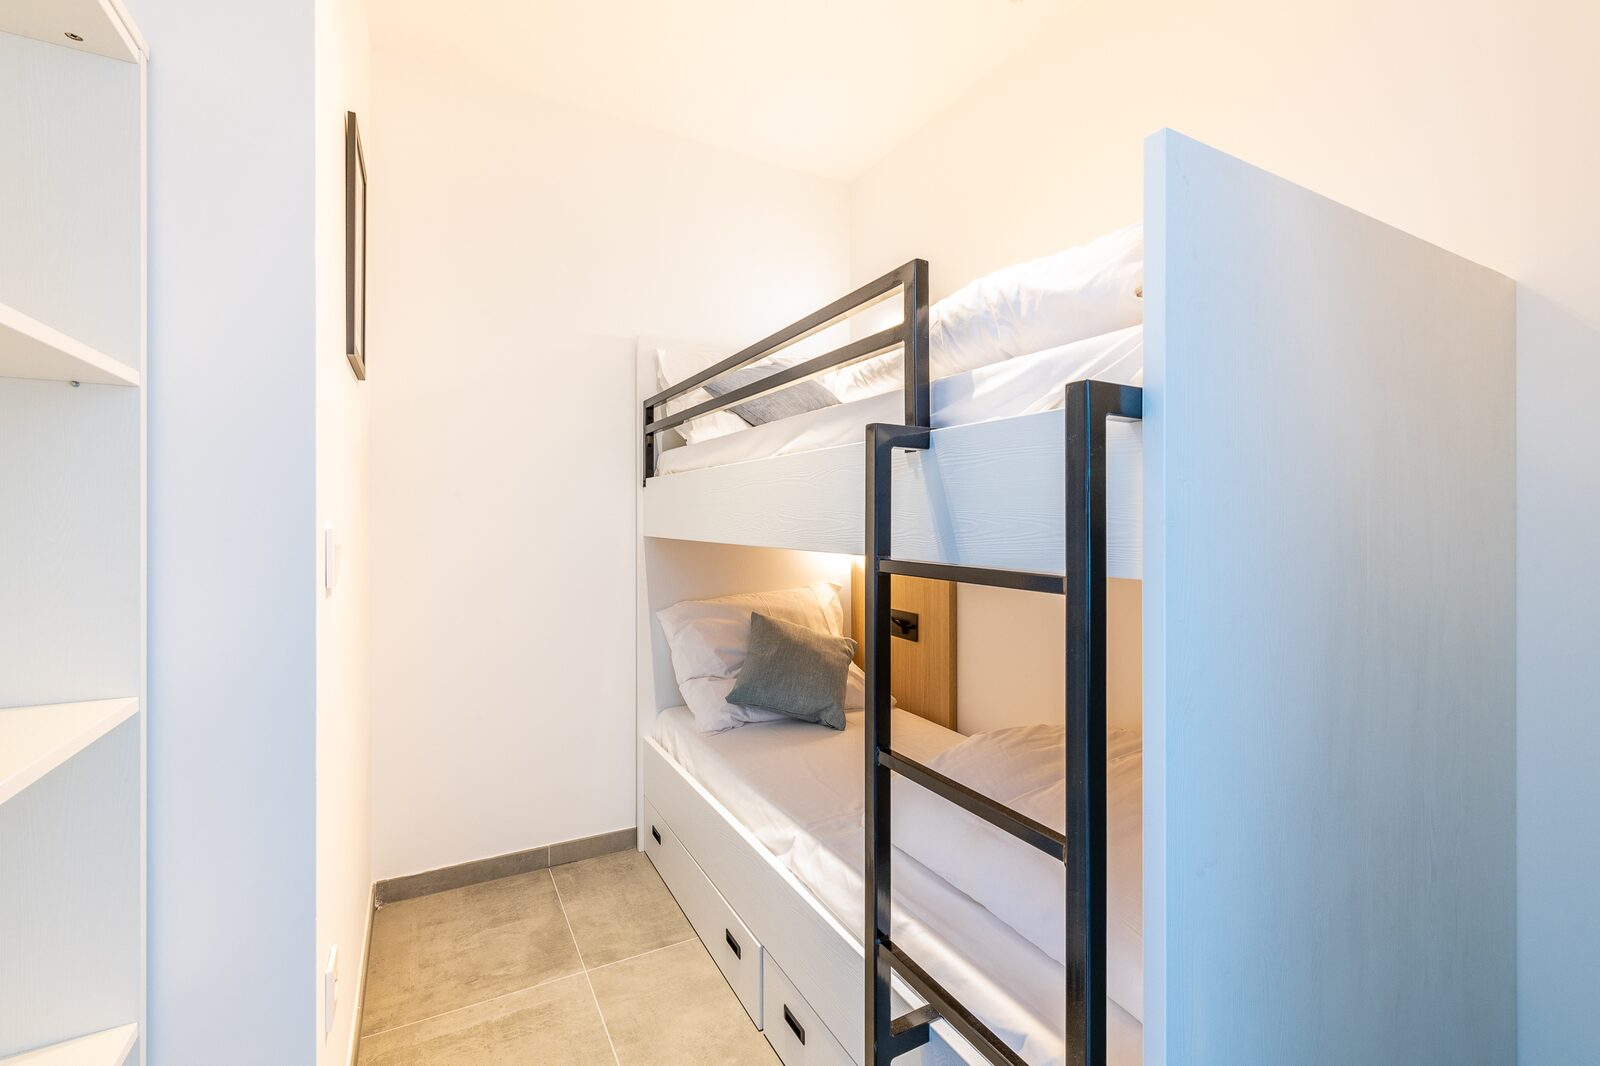 New family suite for 6 people with 2 bunk beds